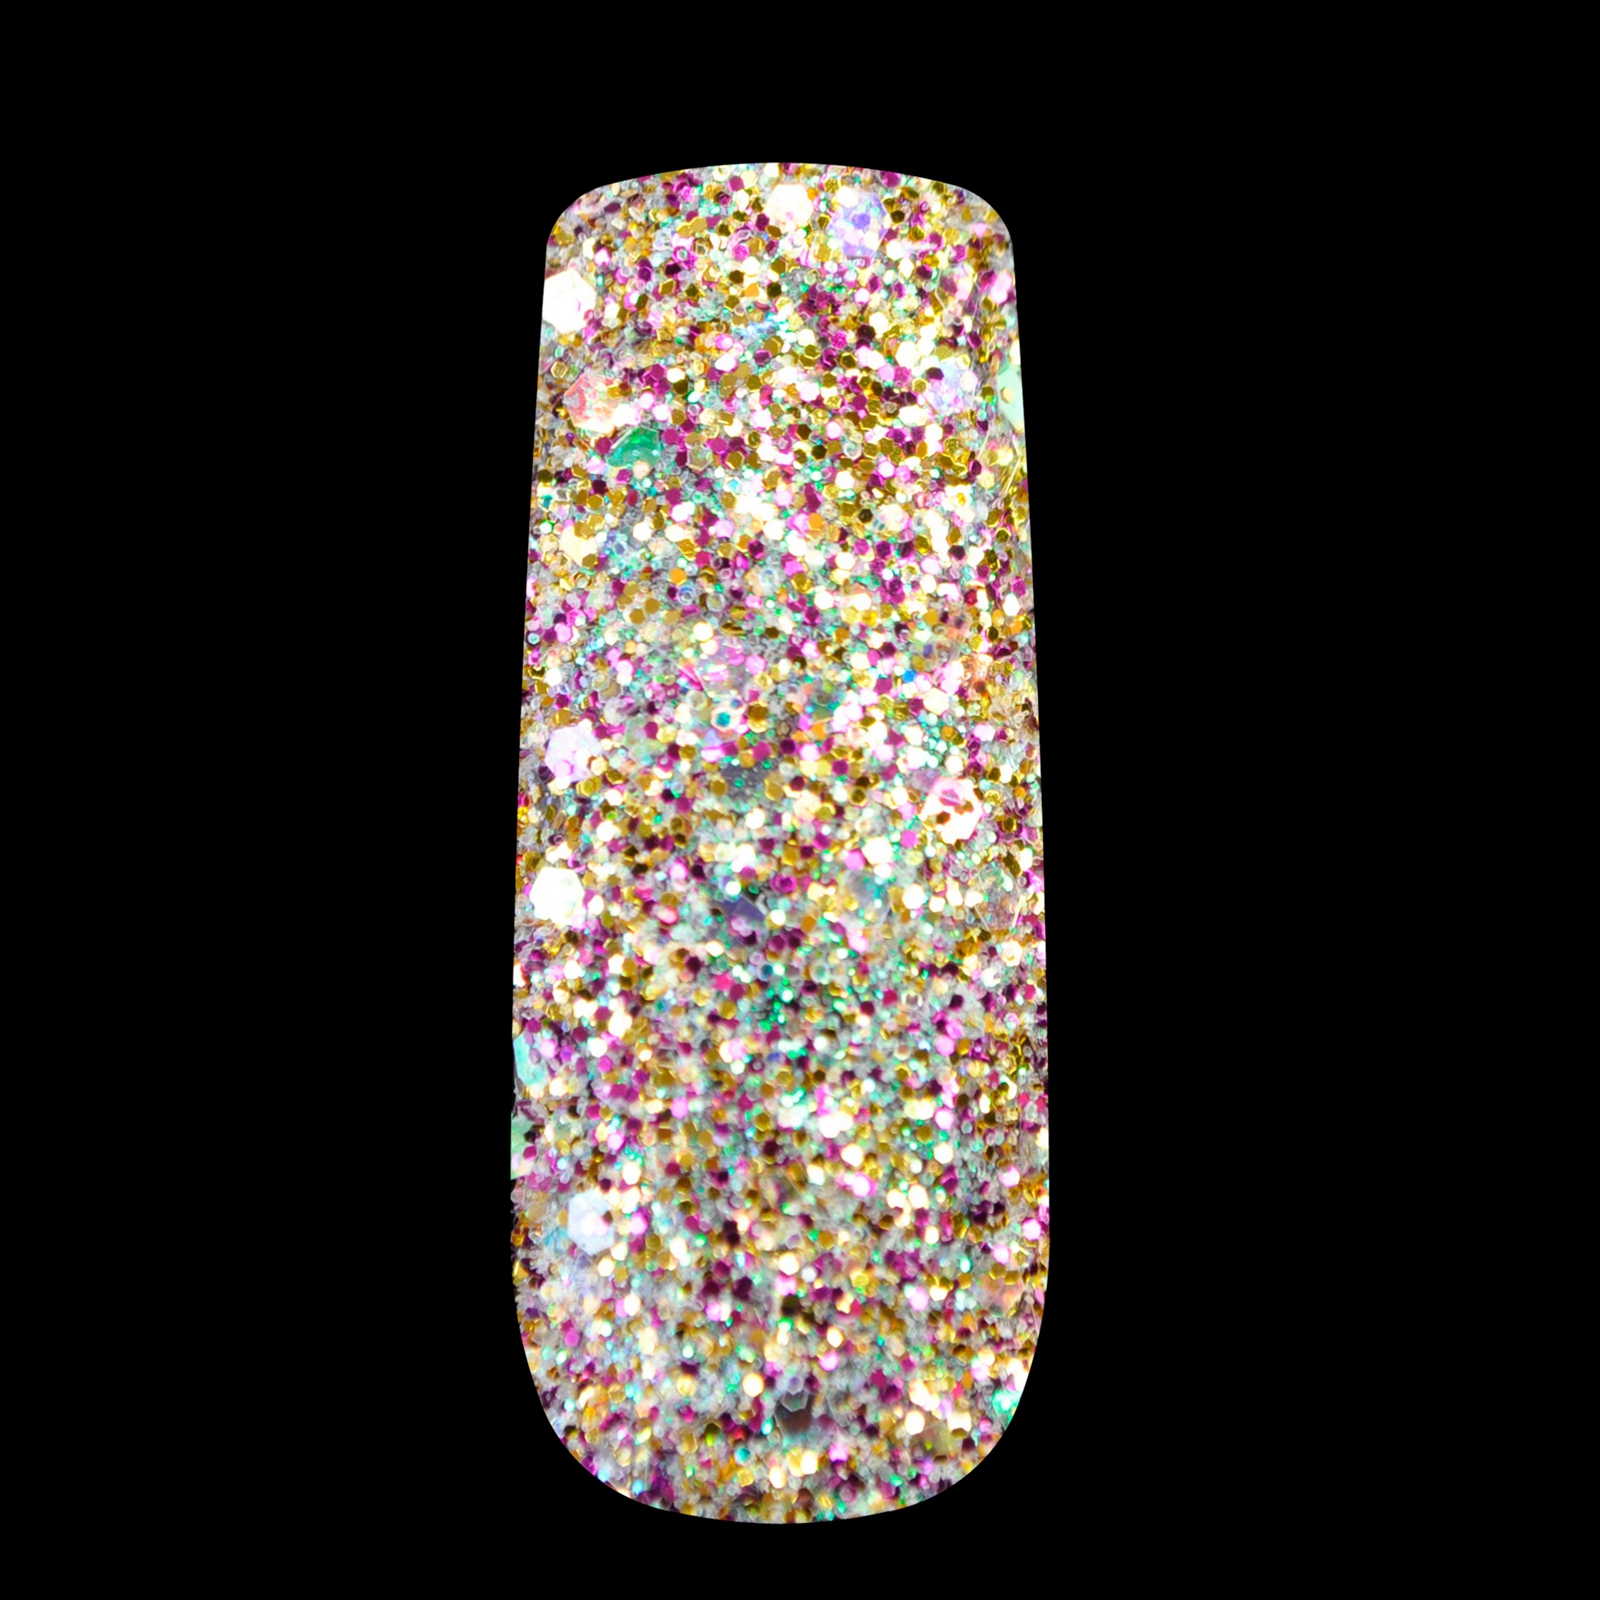 Shining Abalone Transparents Sequins Dust DIY Nail Art Glitter Gem ...